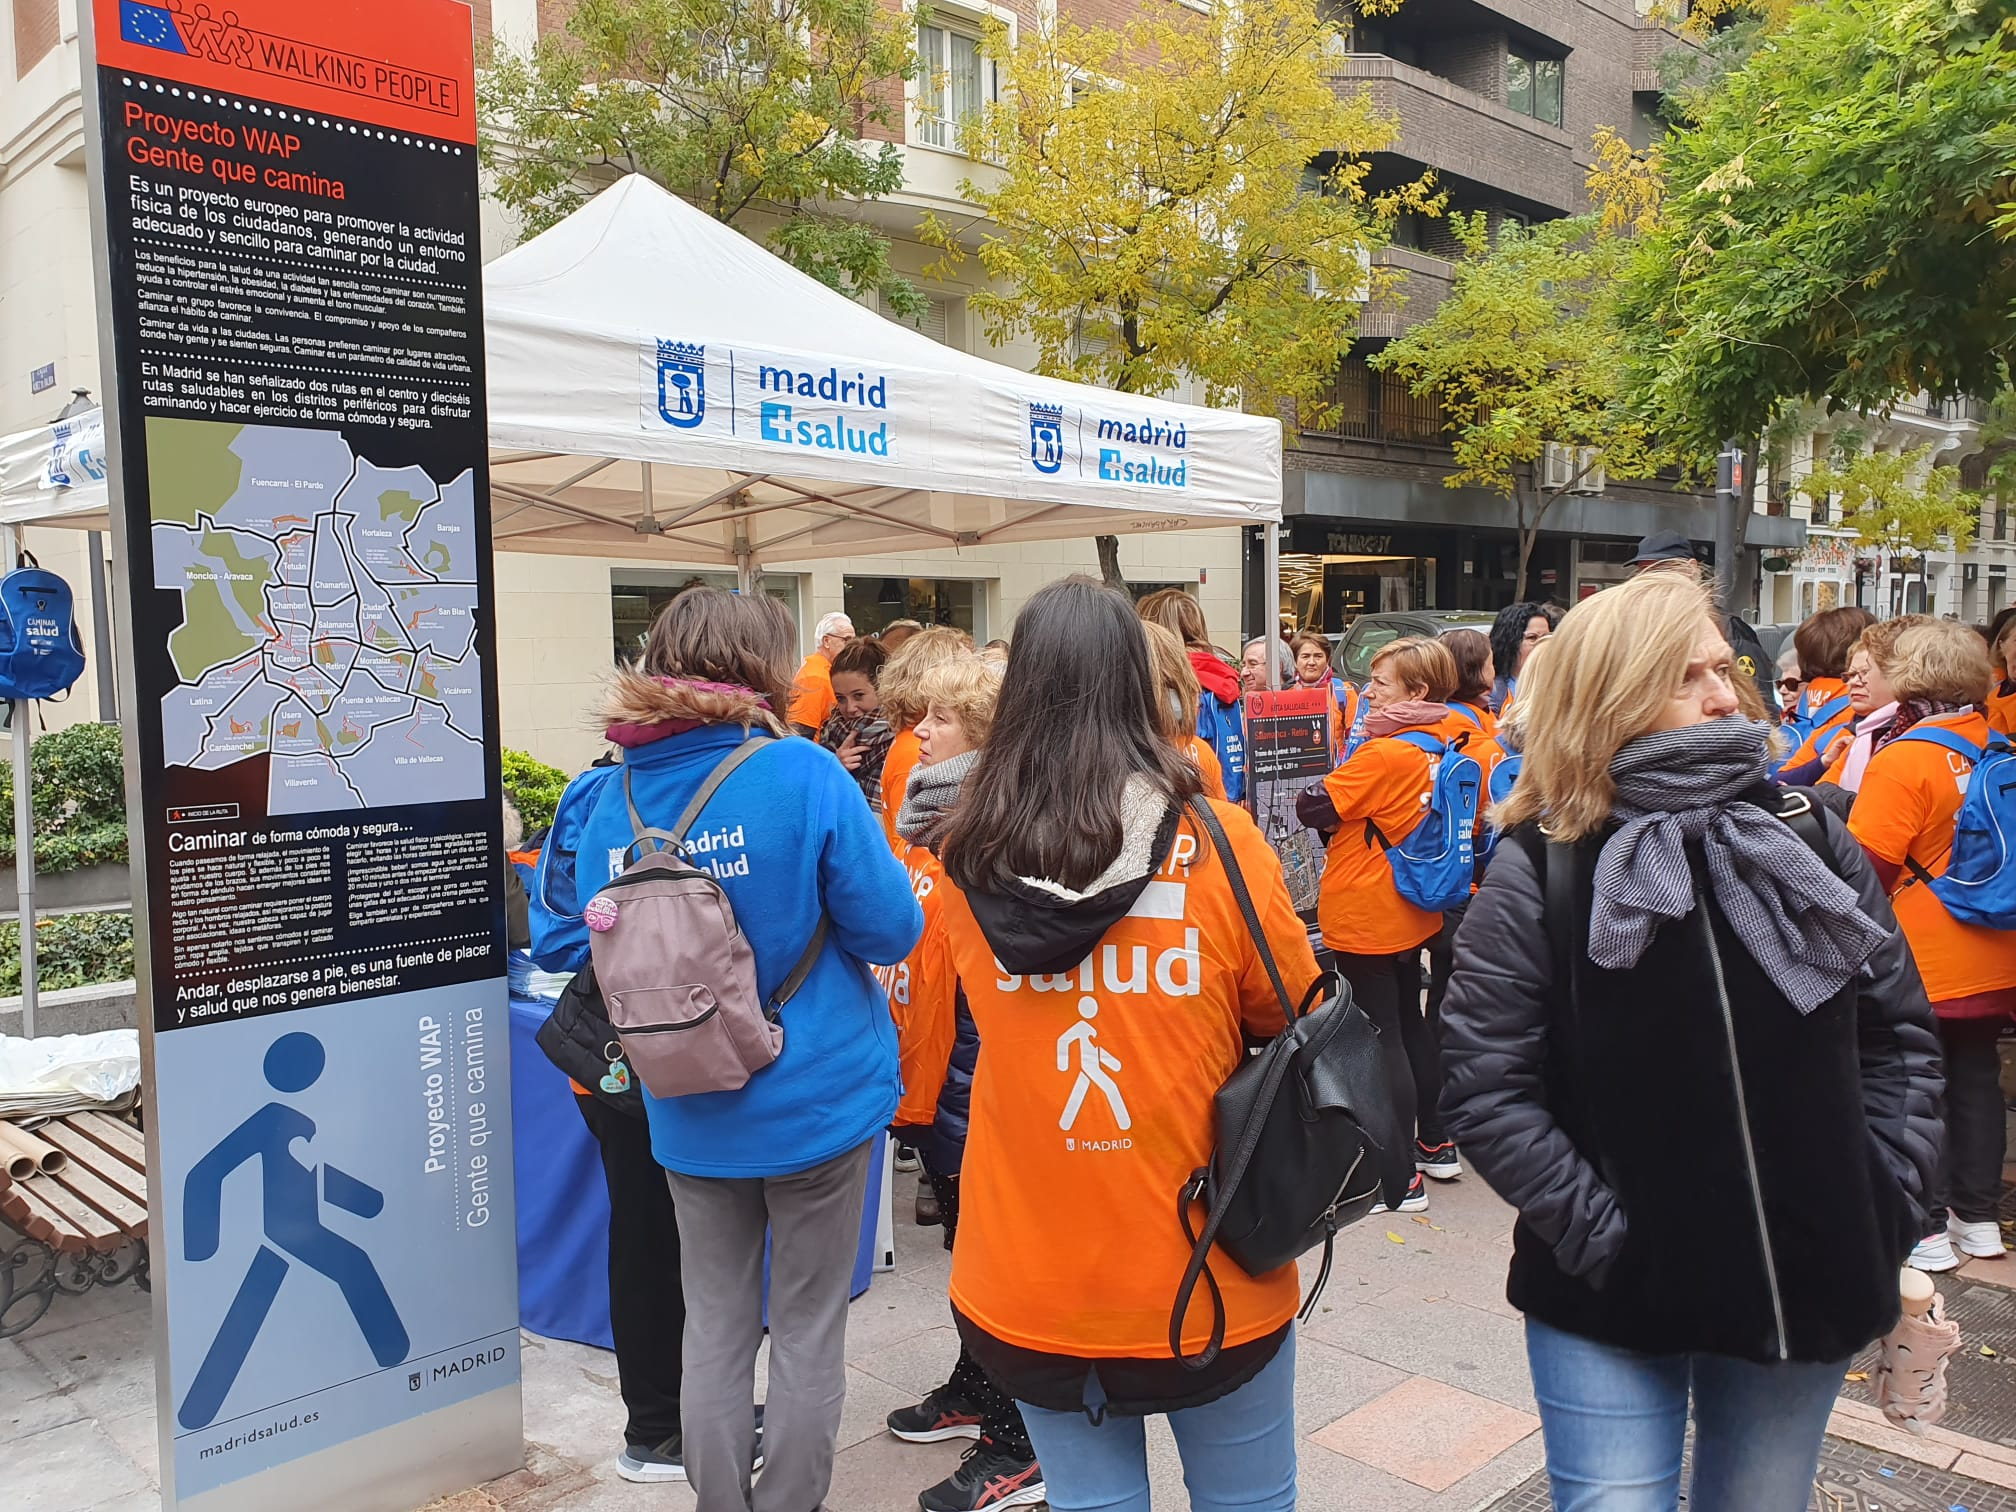 18 Rutas saludables para caminar por Madrid capital